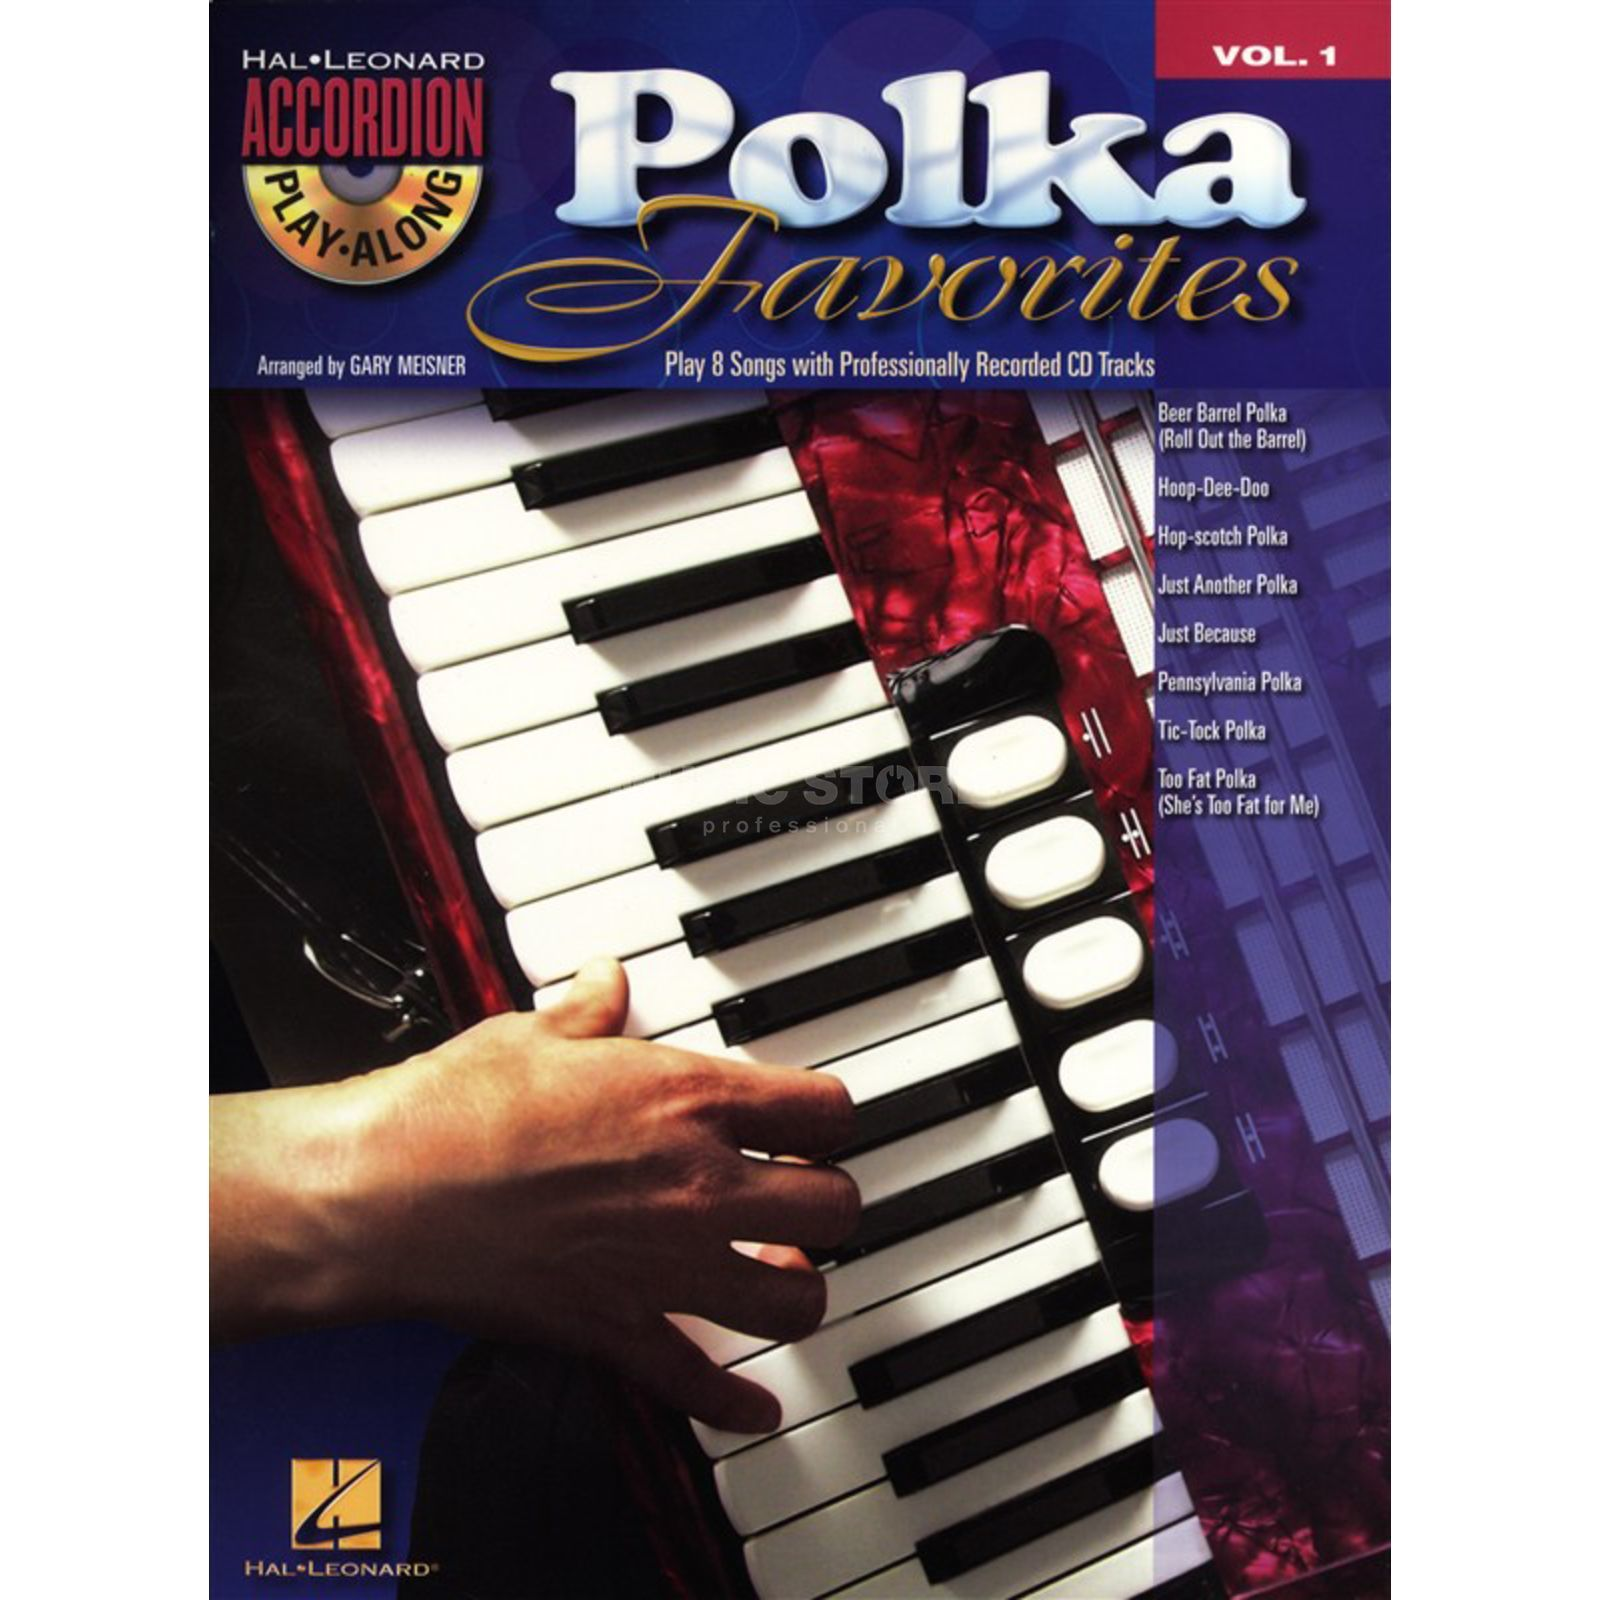 Hal Leonard Accordion Play-Along: Polka Favourites Vol.1, CD Produktbillede